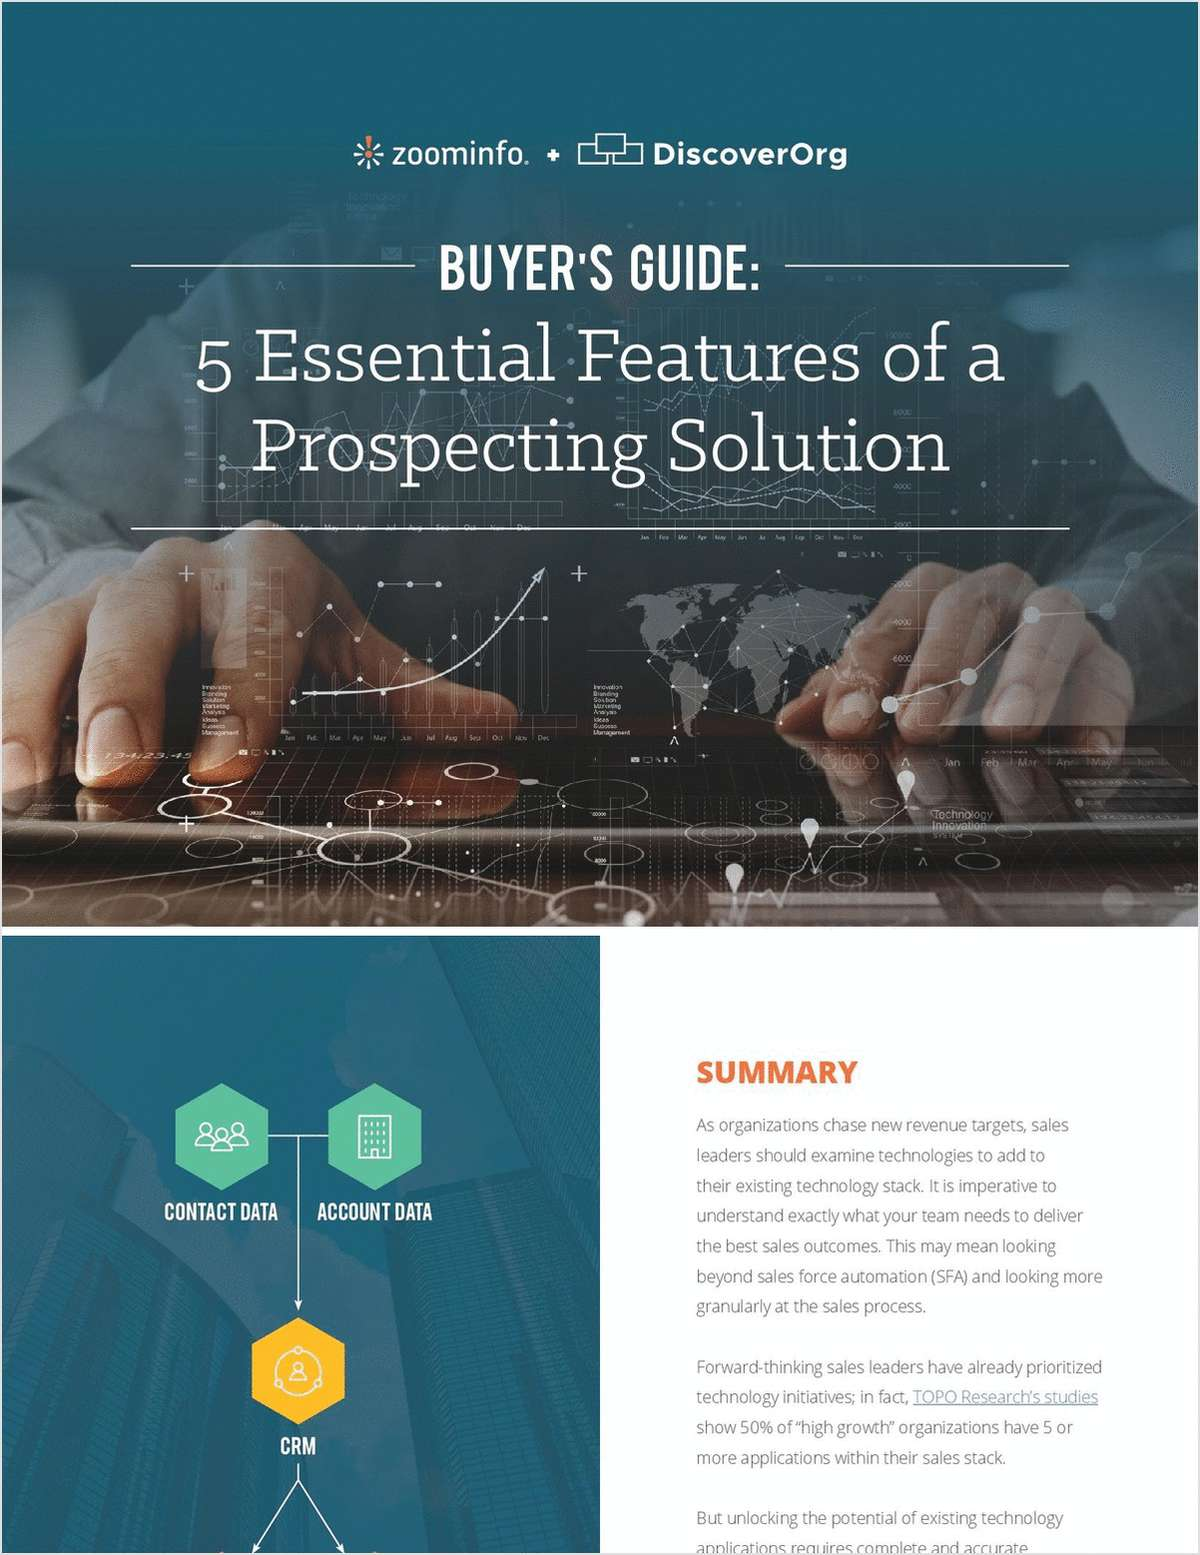 5 Essential Features of a Prospecting Solution